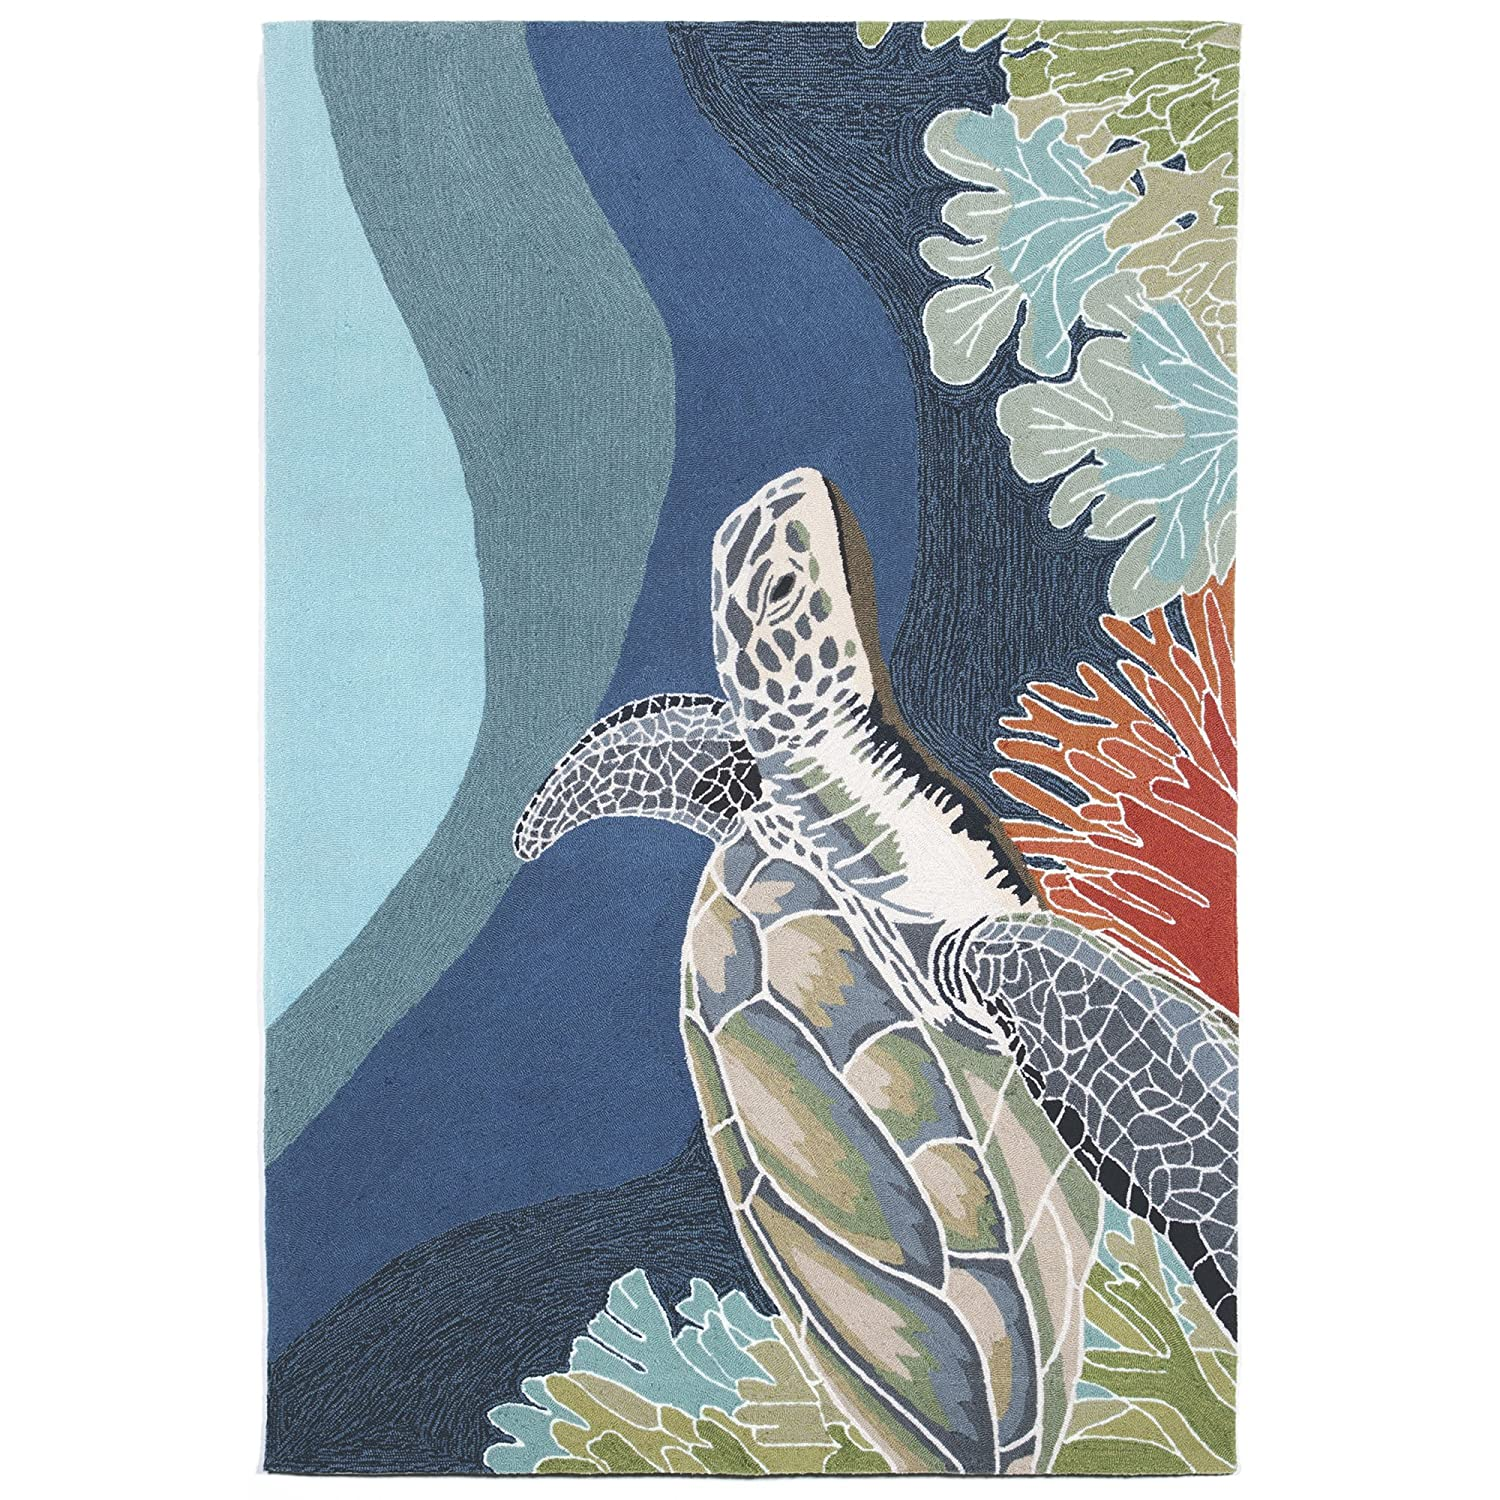 Liora Manne RV023A35904 Torello Sea Turtle Rug, Scatter Size, Ocean, 24x36 24x36 The Trans Ocean Group